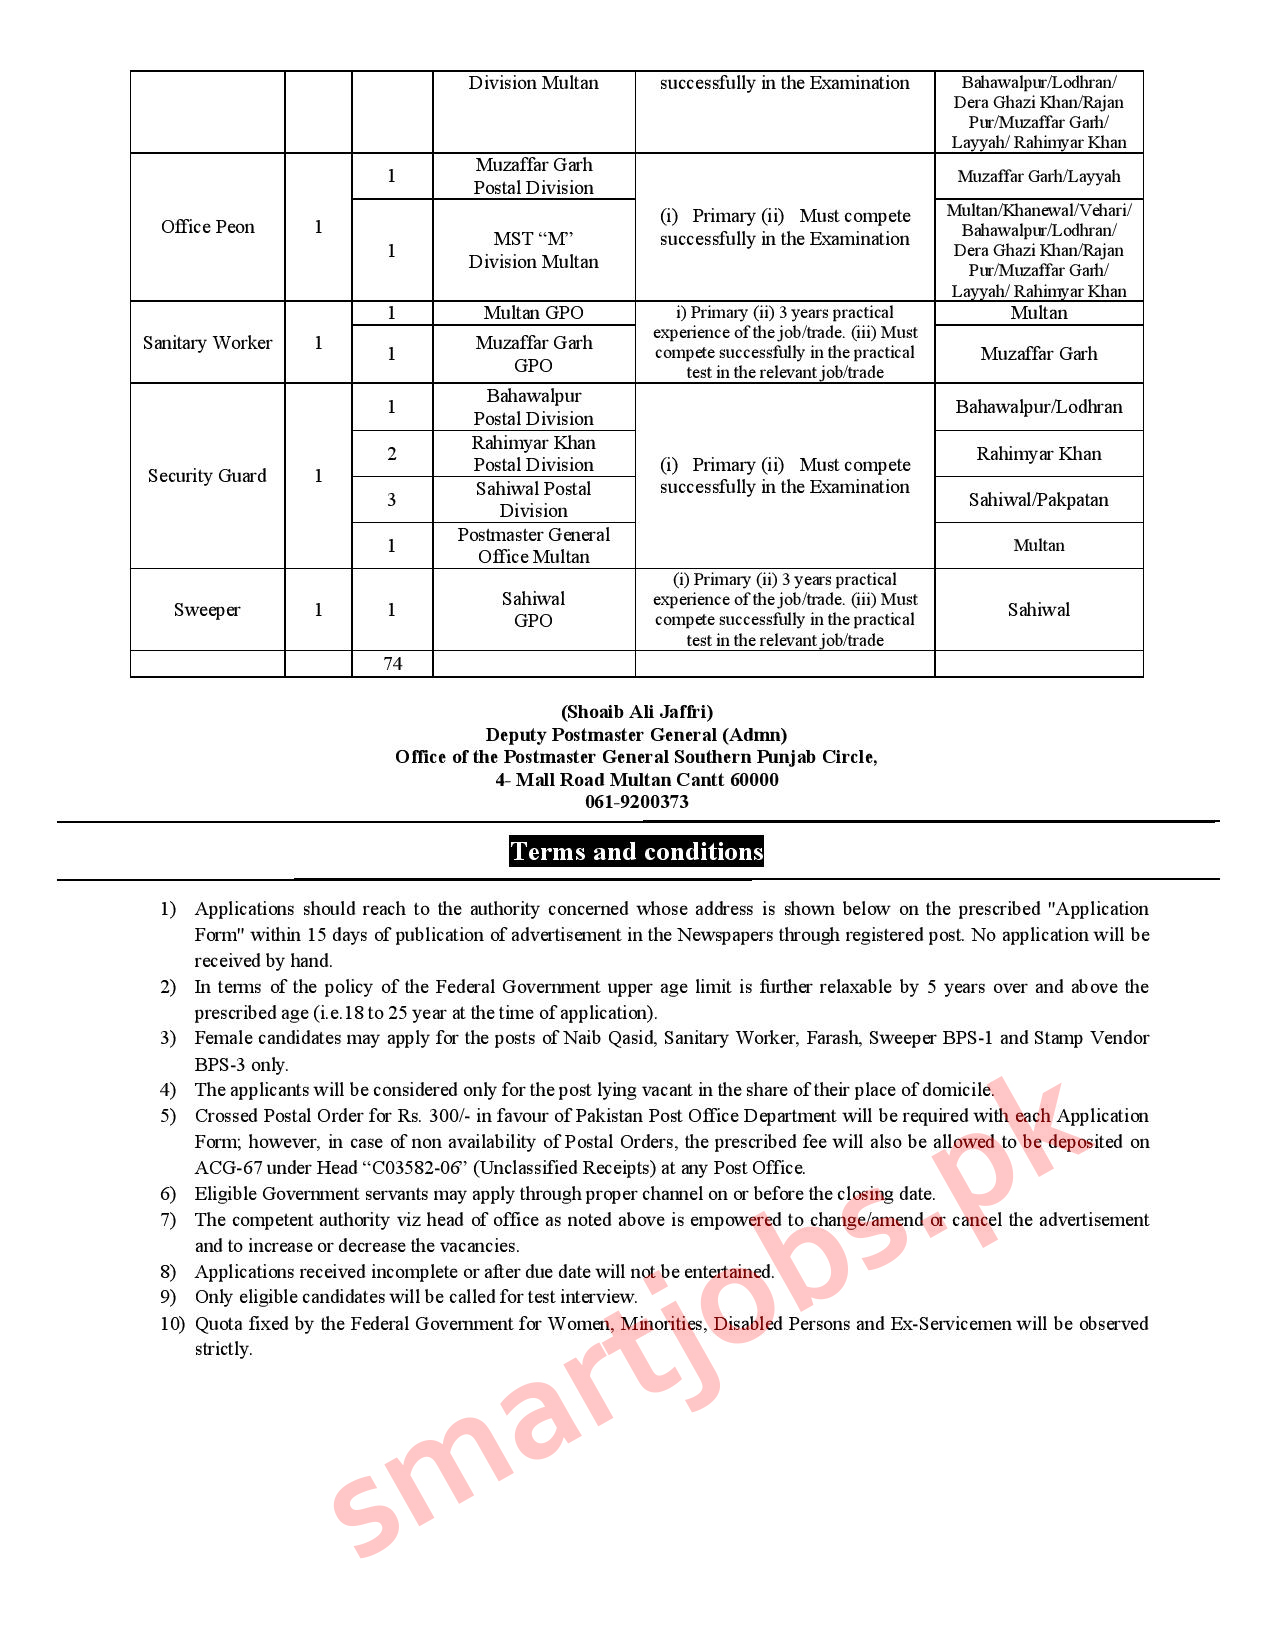 Pakistan Post Jobs 2020, PAKISTAN POST OFFICE Jobs 2020